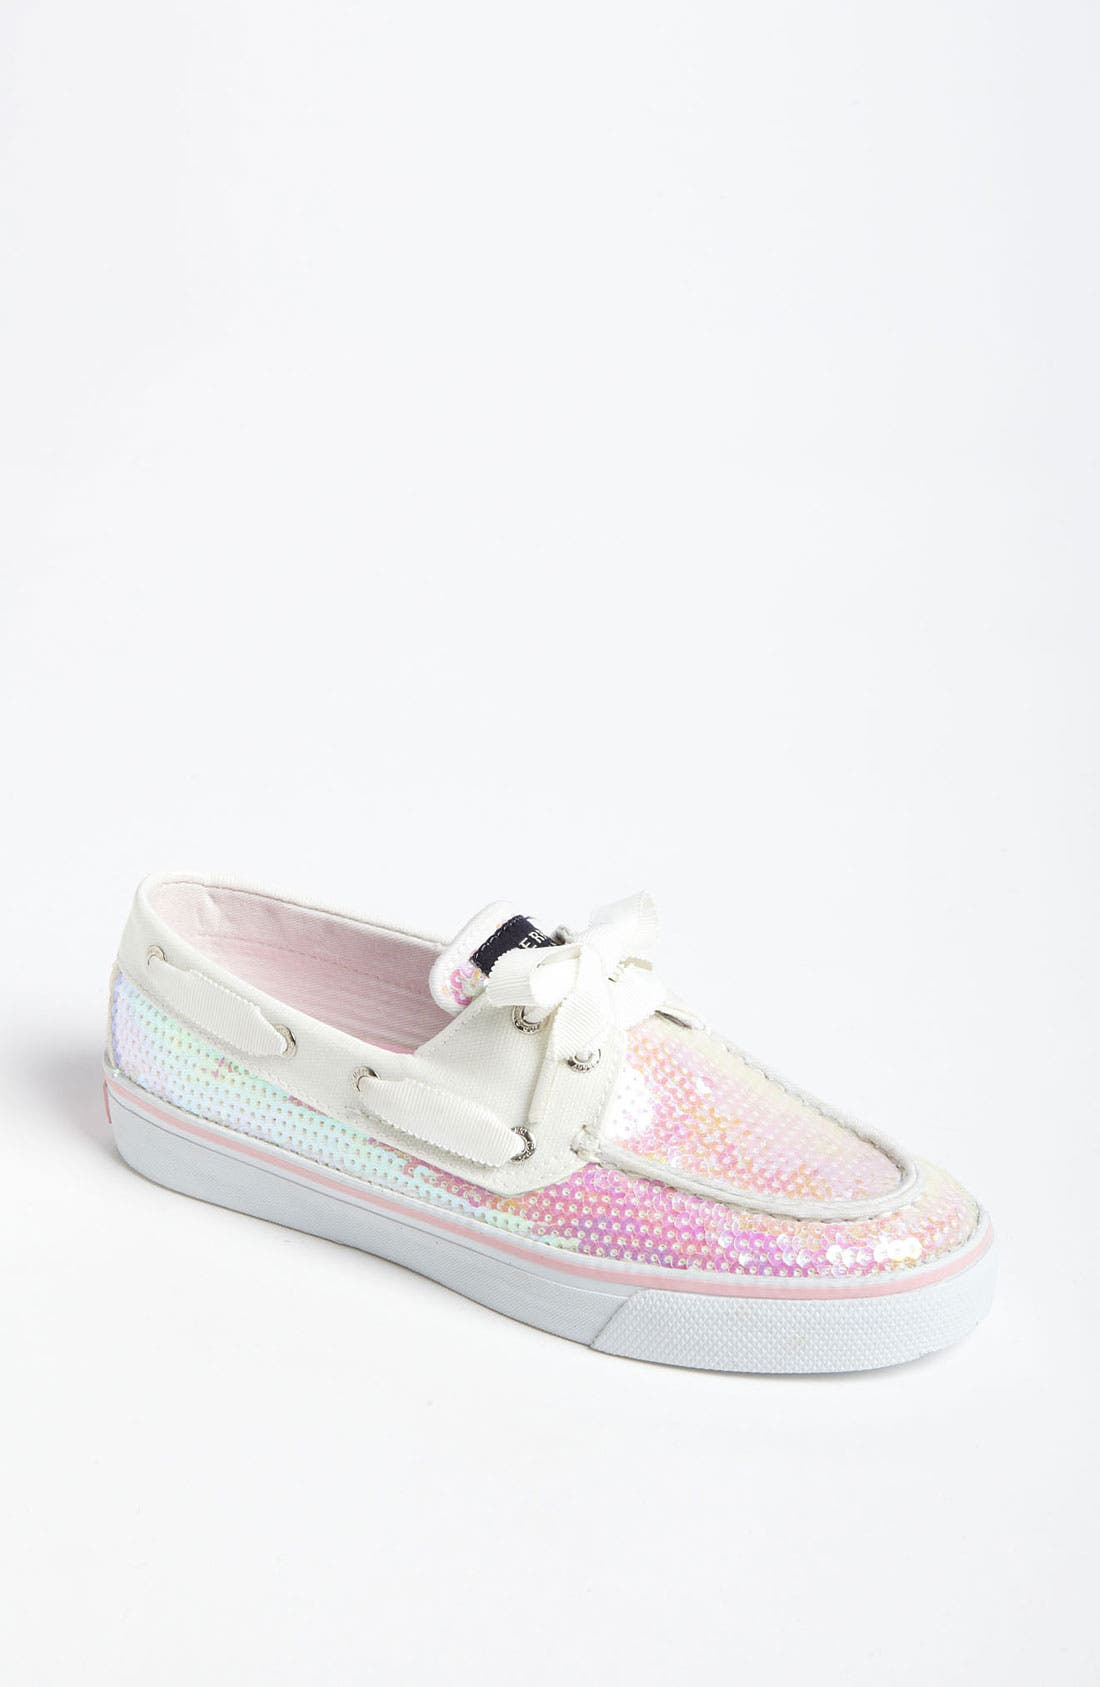 Top-Sider<sup>®</sup> 'Bahama' Sequined Boat Shoe,                             Main thumbnail 15, color,